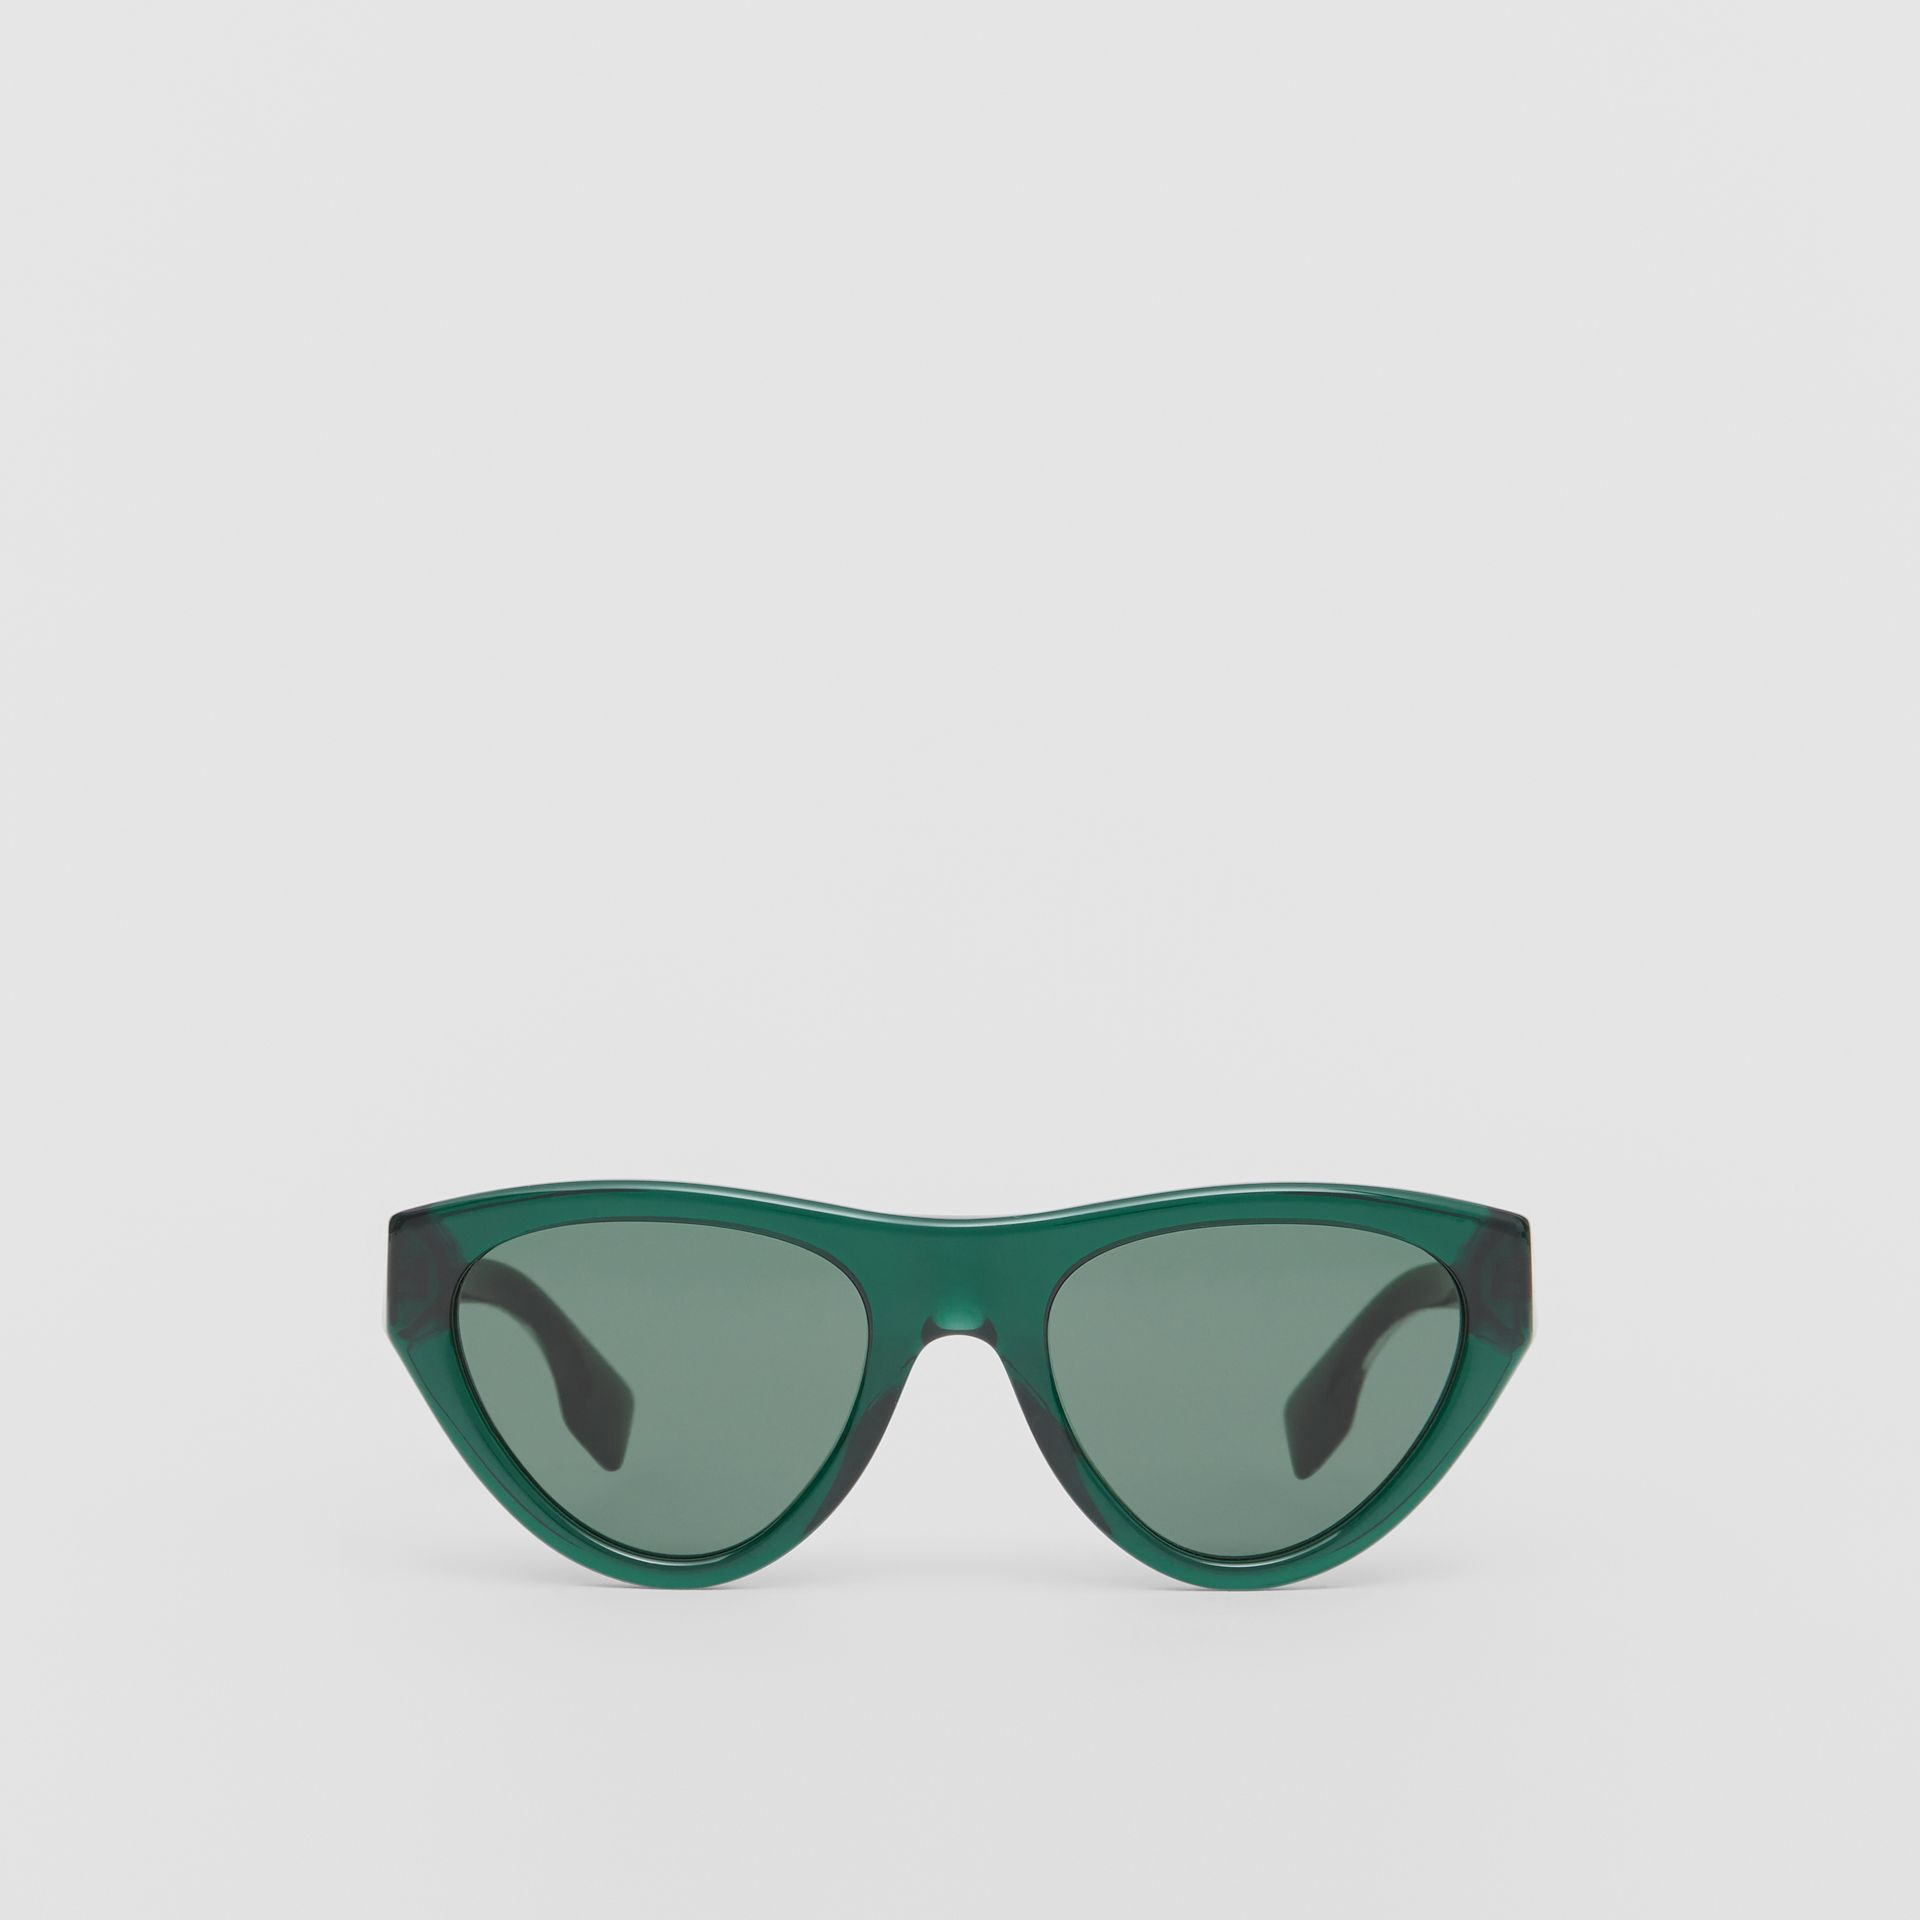 Triangular Frame Sunglasses in Green - Women | Burberry - gallery image 0